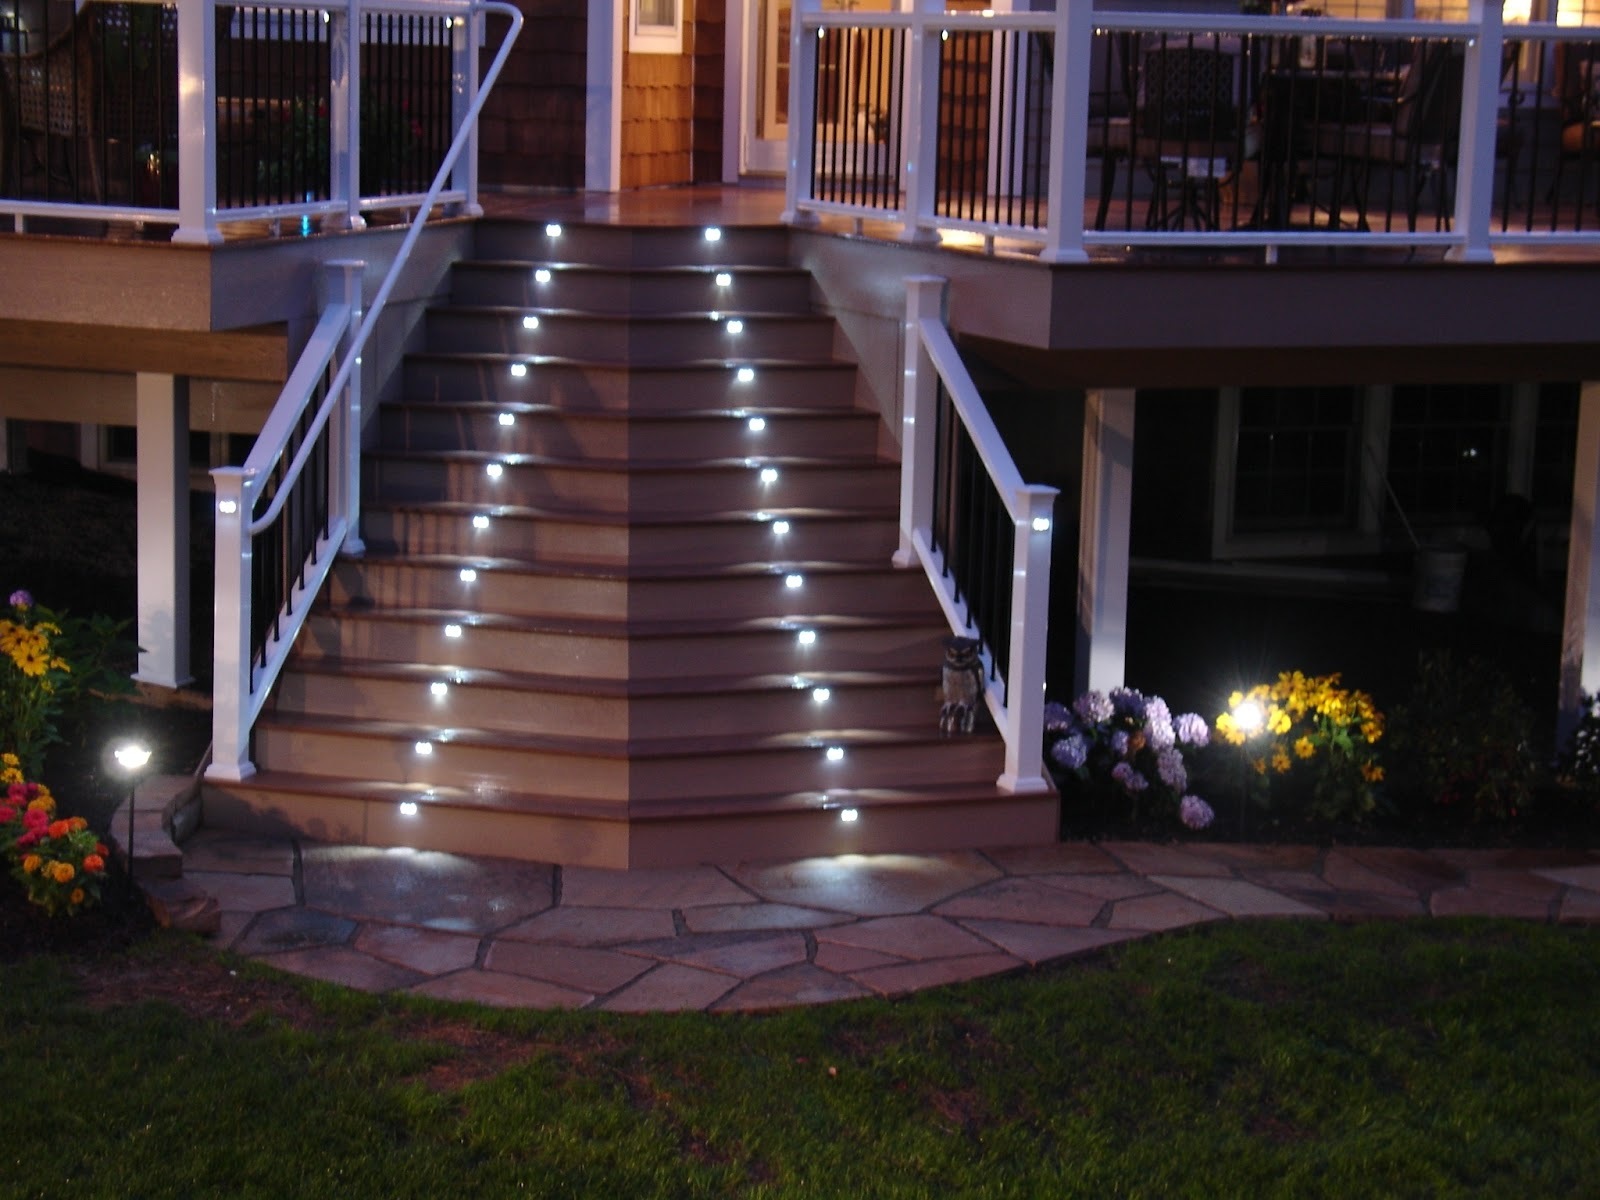 Gift & Home Today: LED Lighting For Porch, Patio Or Indoor Use